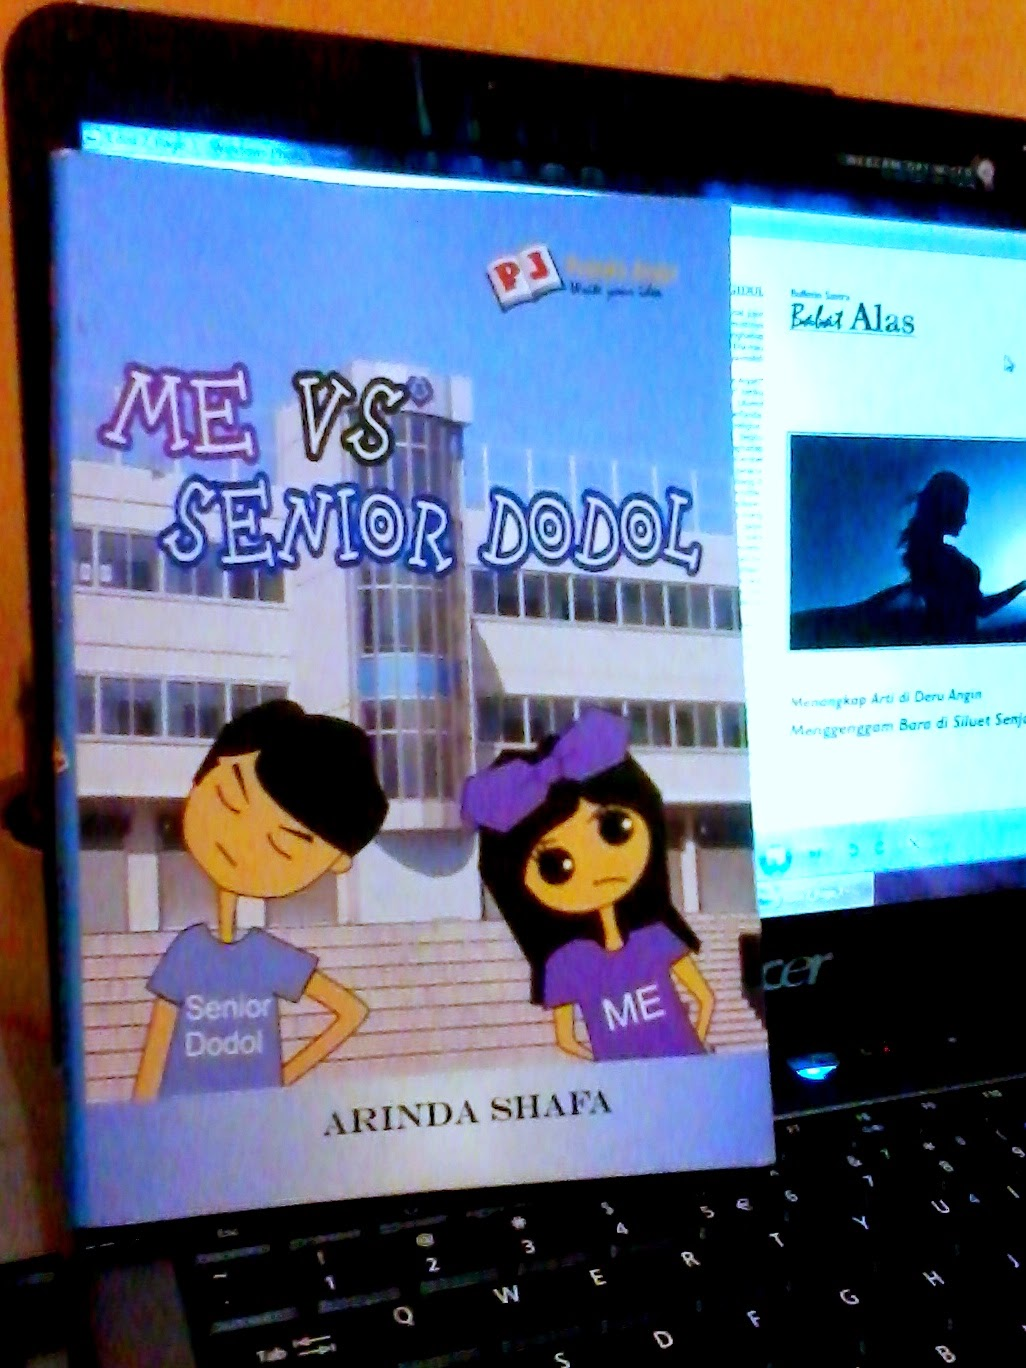 Me vs Senior Dodol karya Arinda Shafa